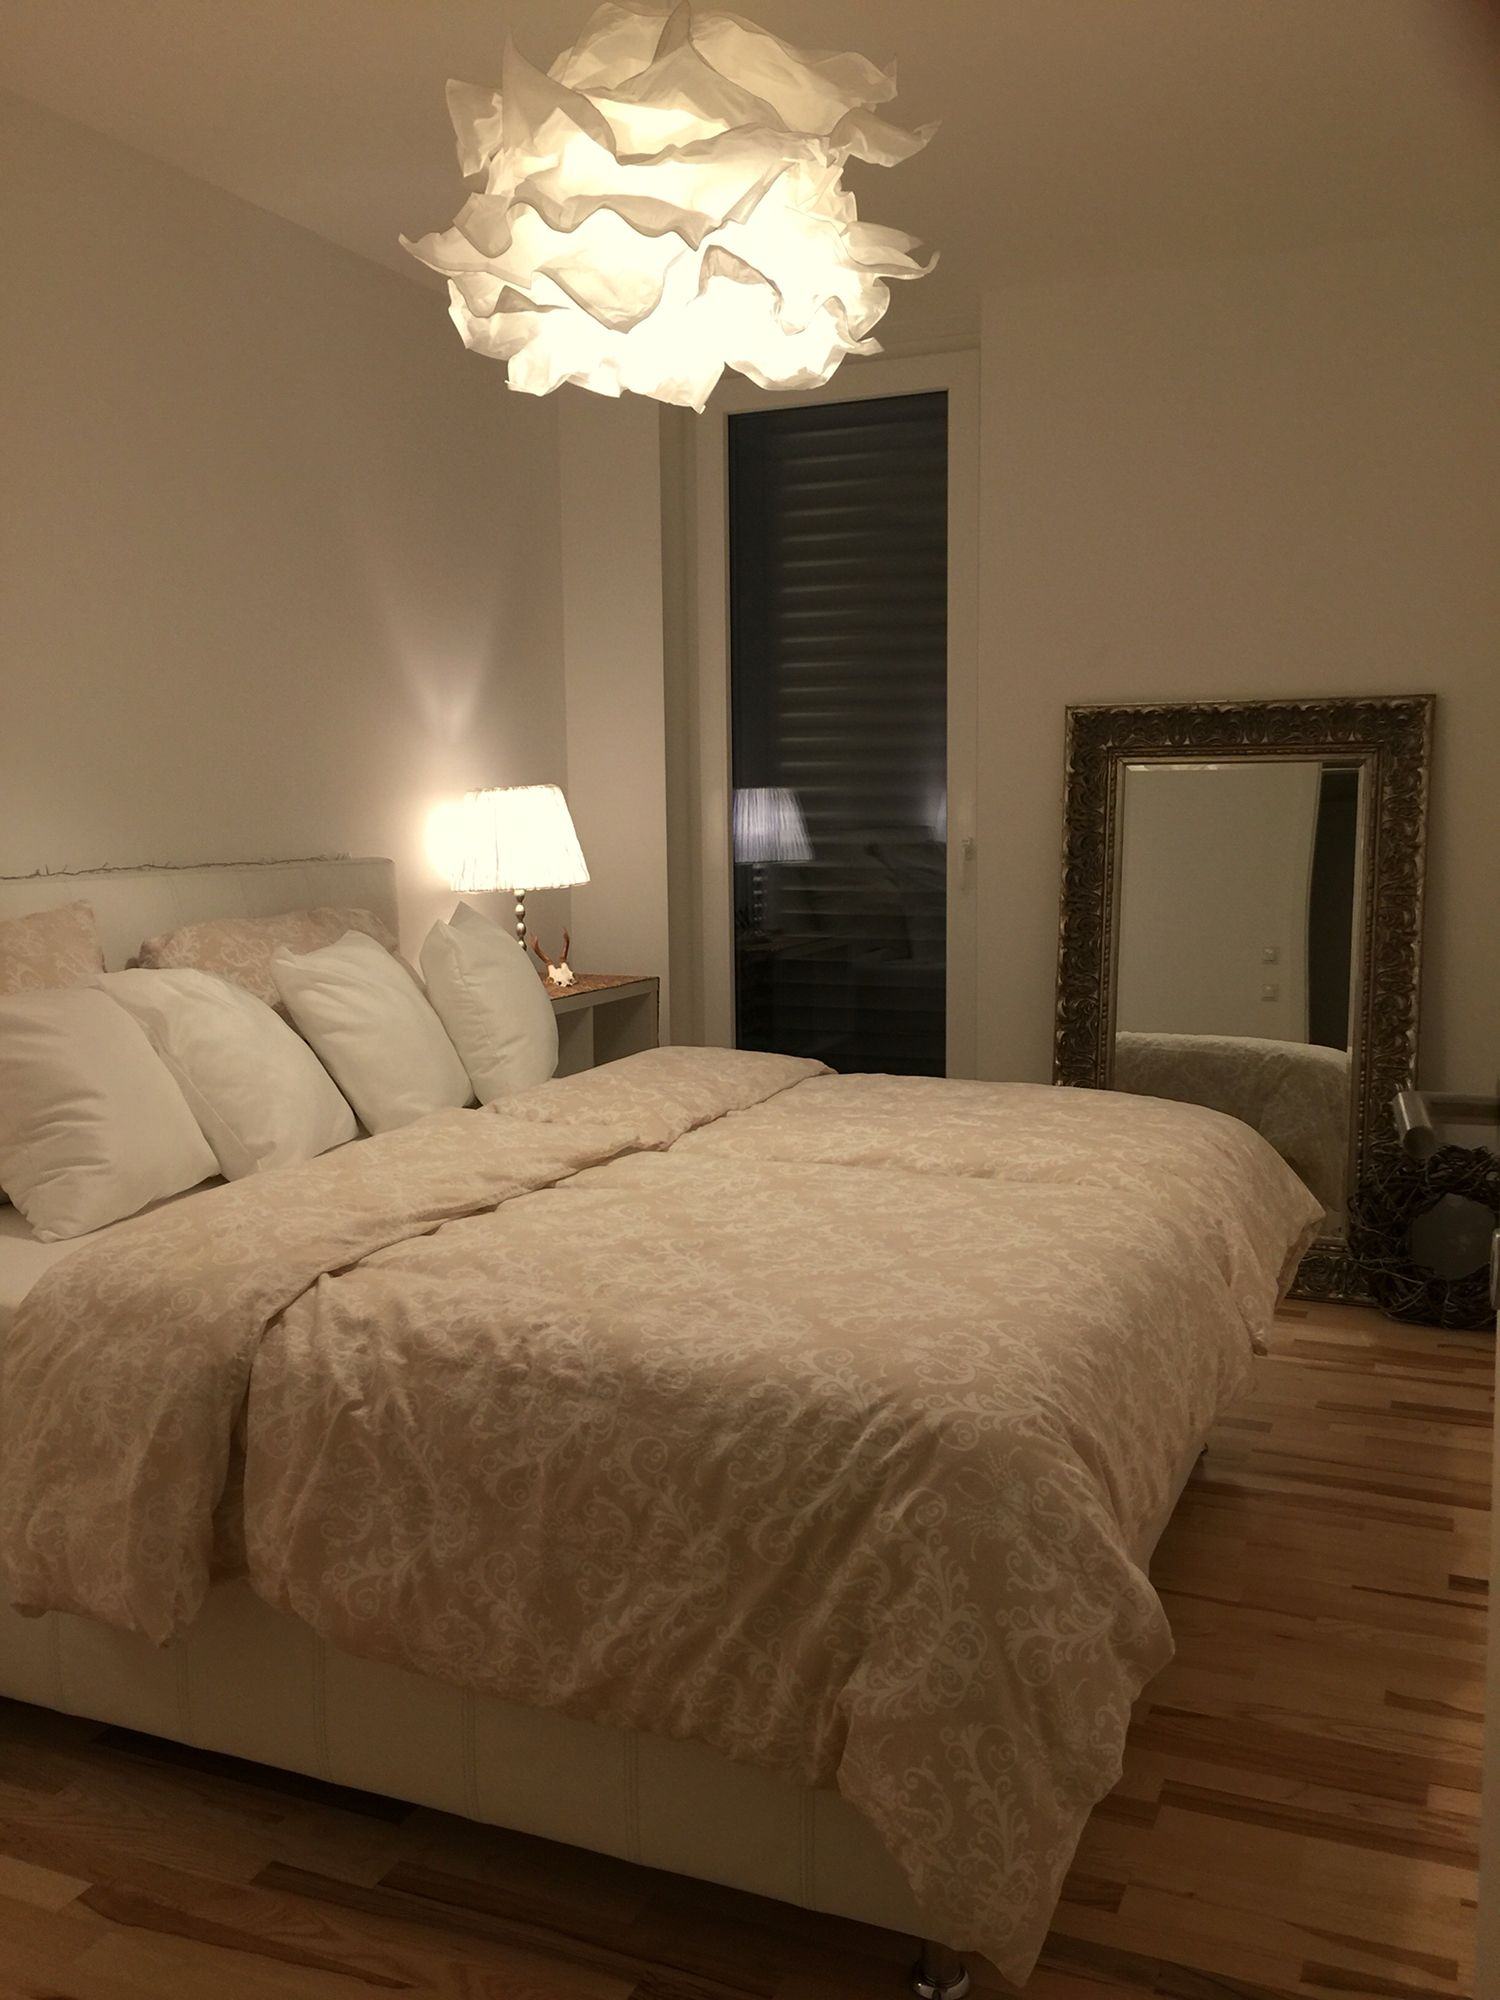 Ikea Krusning … | lighting in 2019 | Bedroom, Bedroom ...